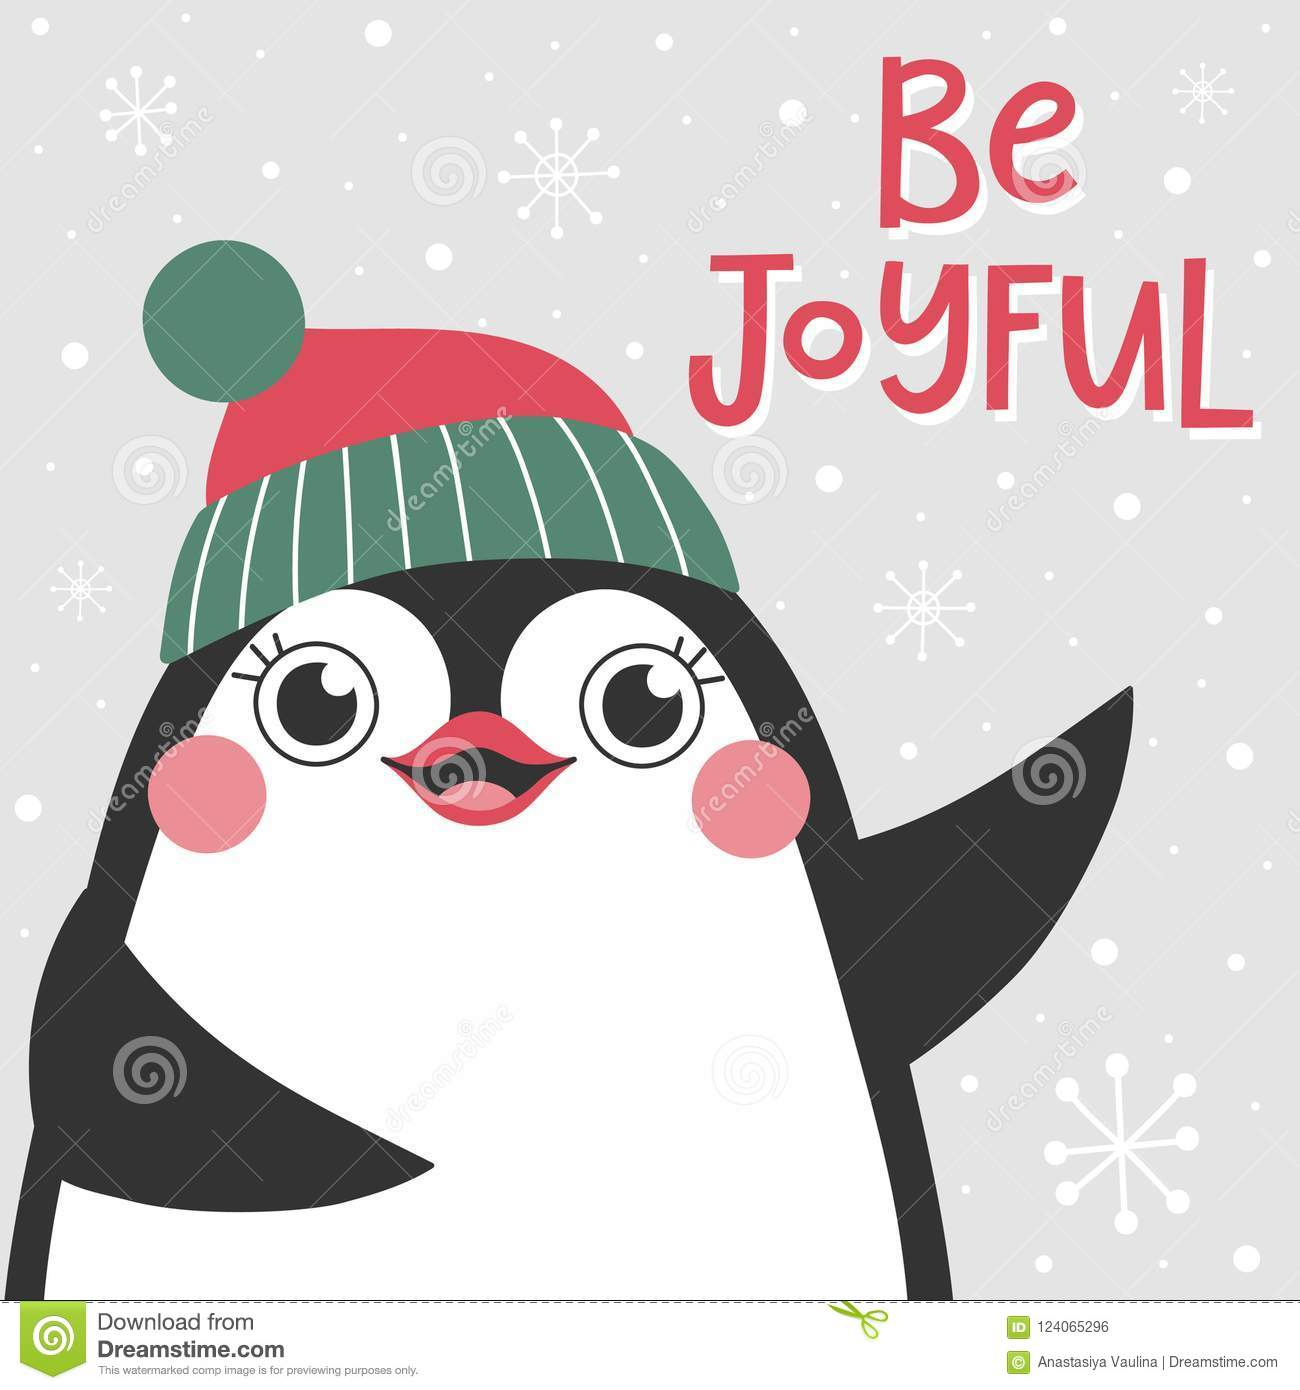 Christmas card with cute penguin and text Be joyful.